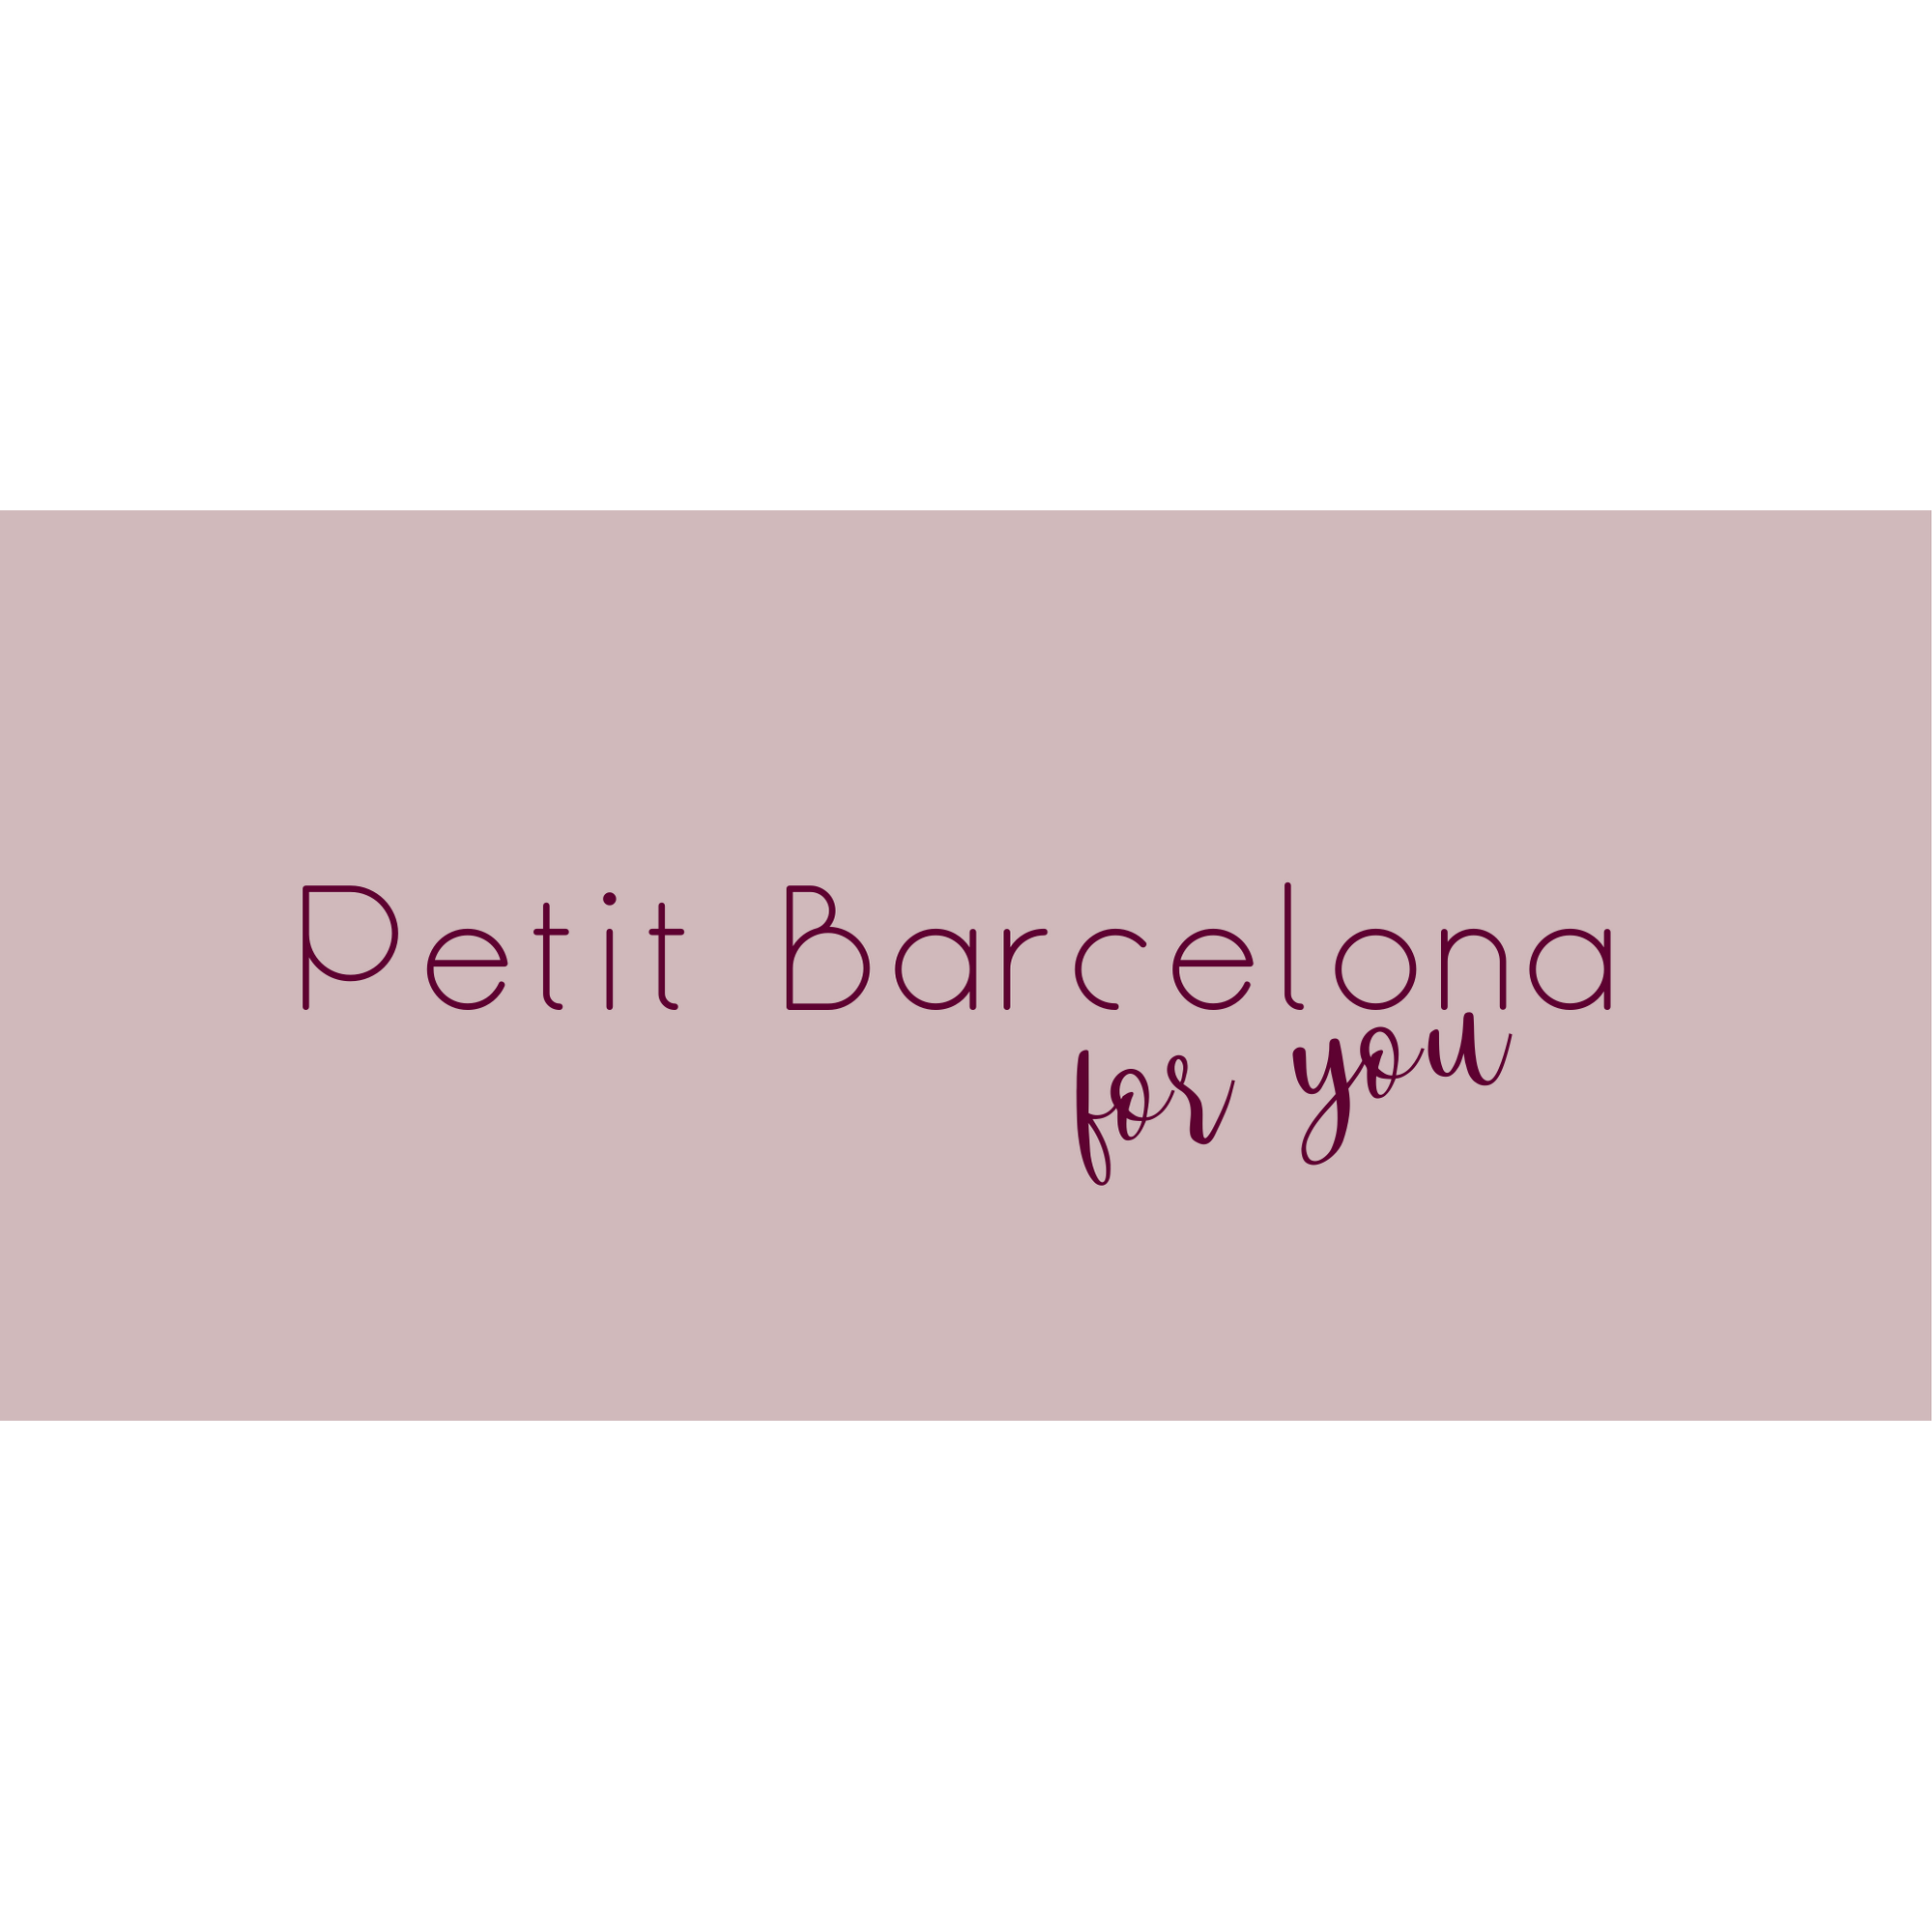 eGIFT CARD - The Gift of Shoes - Petit Barcelona Avarcas